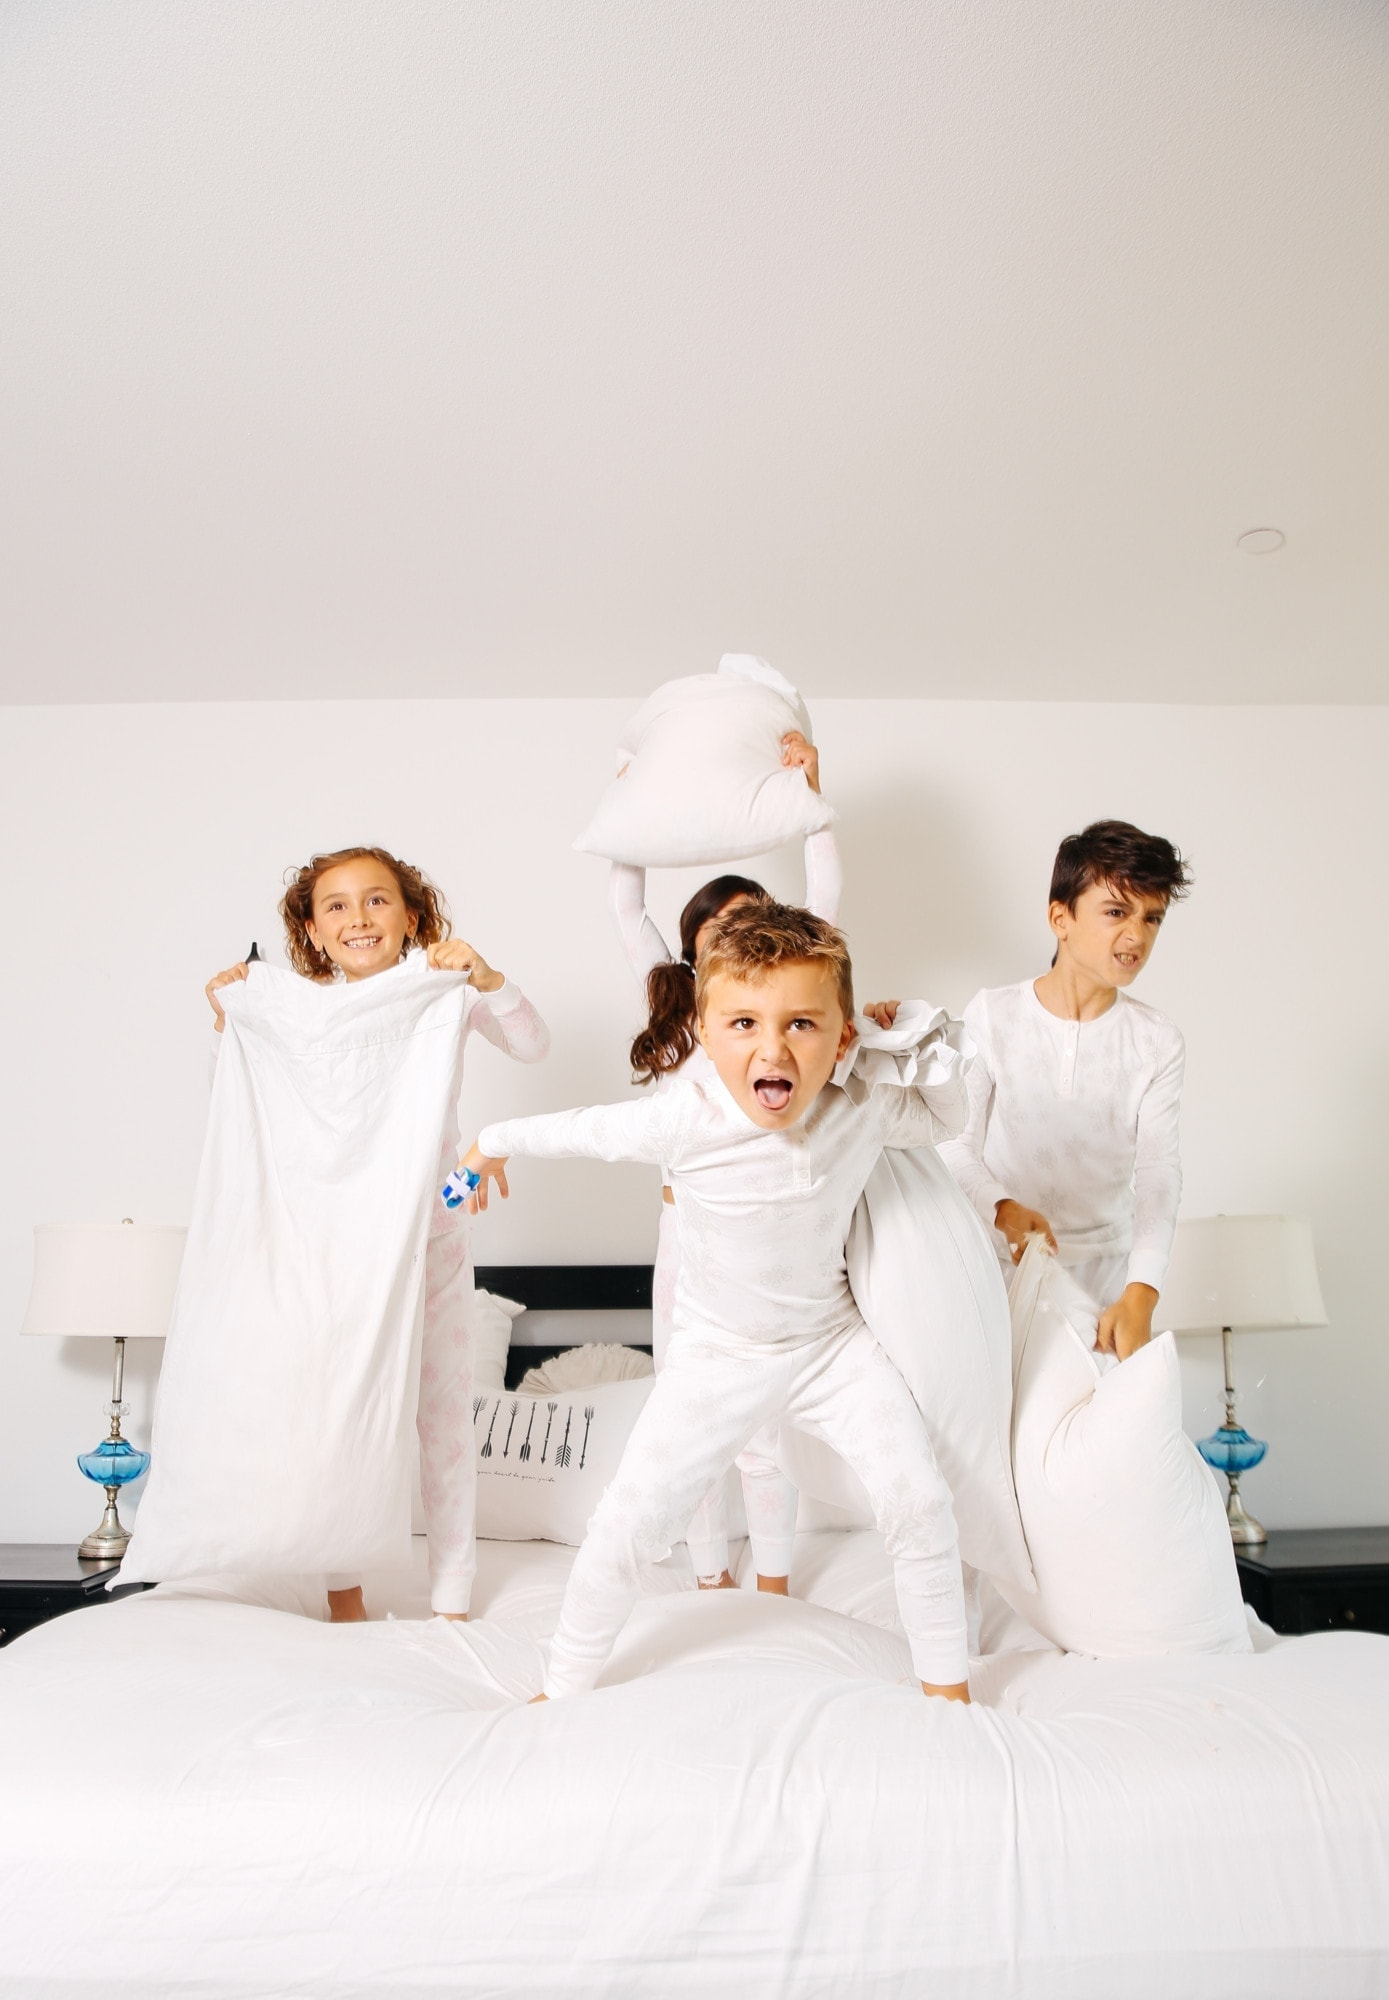 kids pillow fight